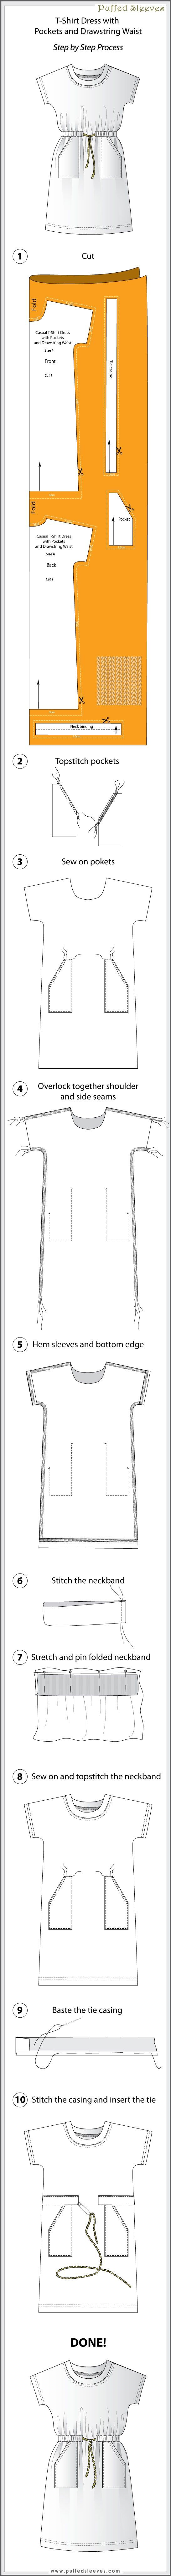 Casual T-Shirt dress with pockets. Printable sewing pattern. | Paris ...